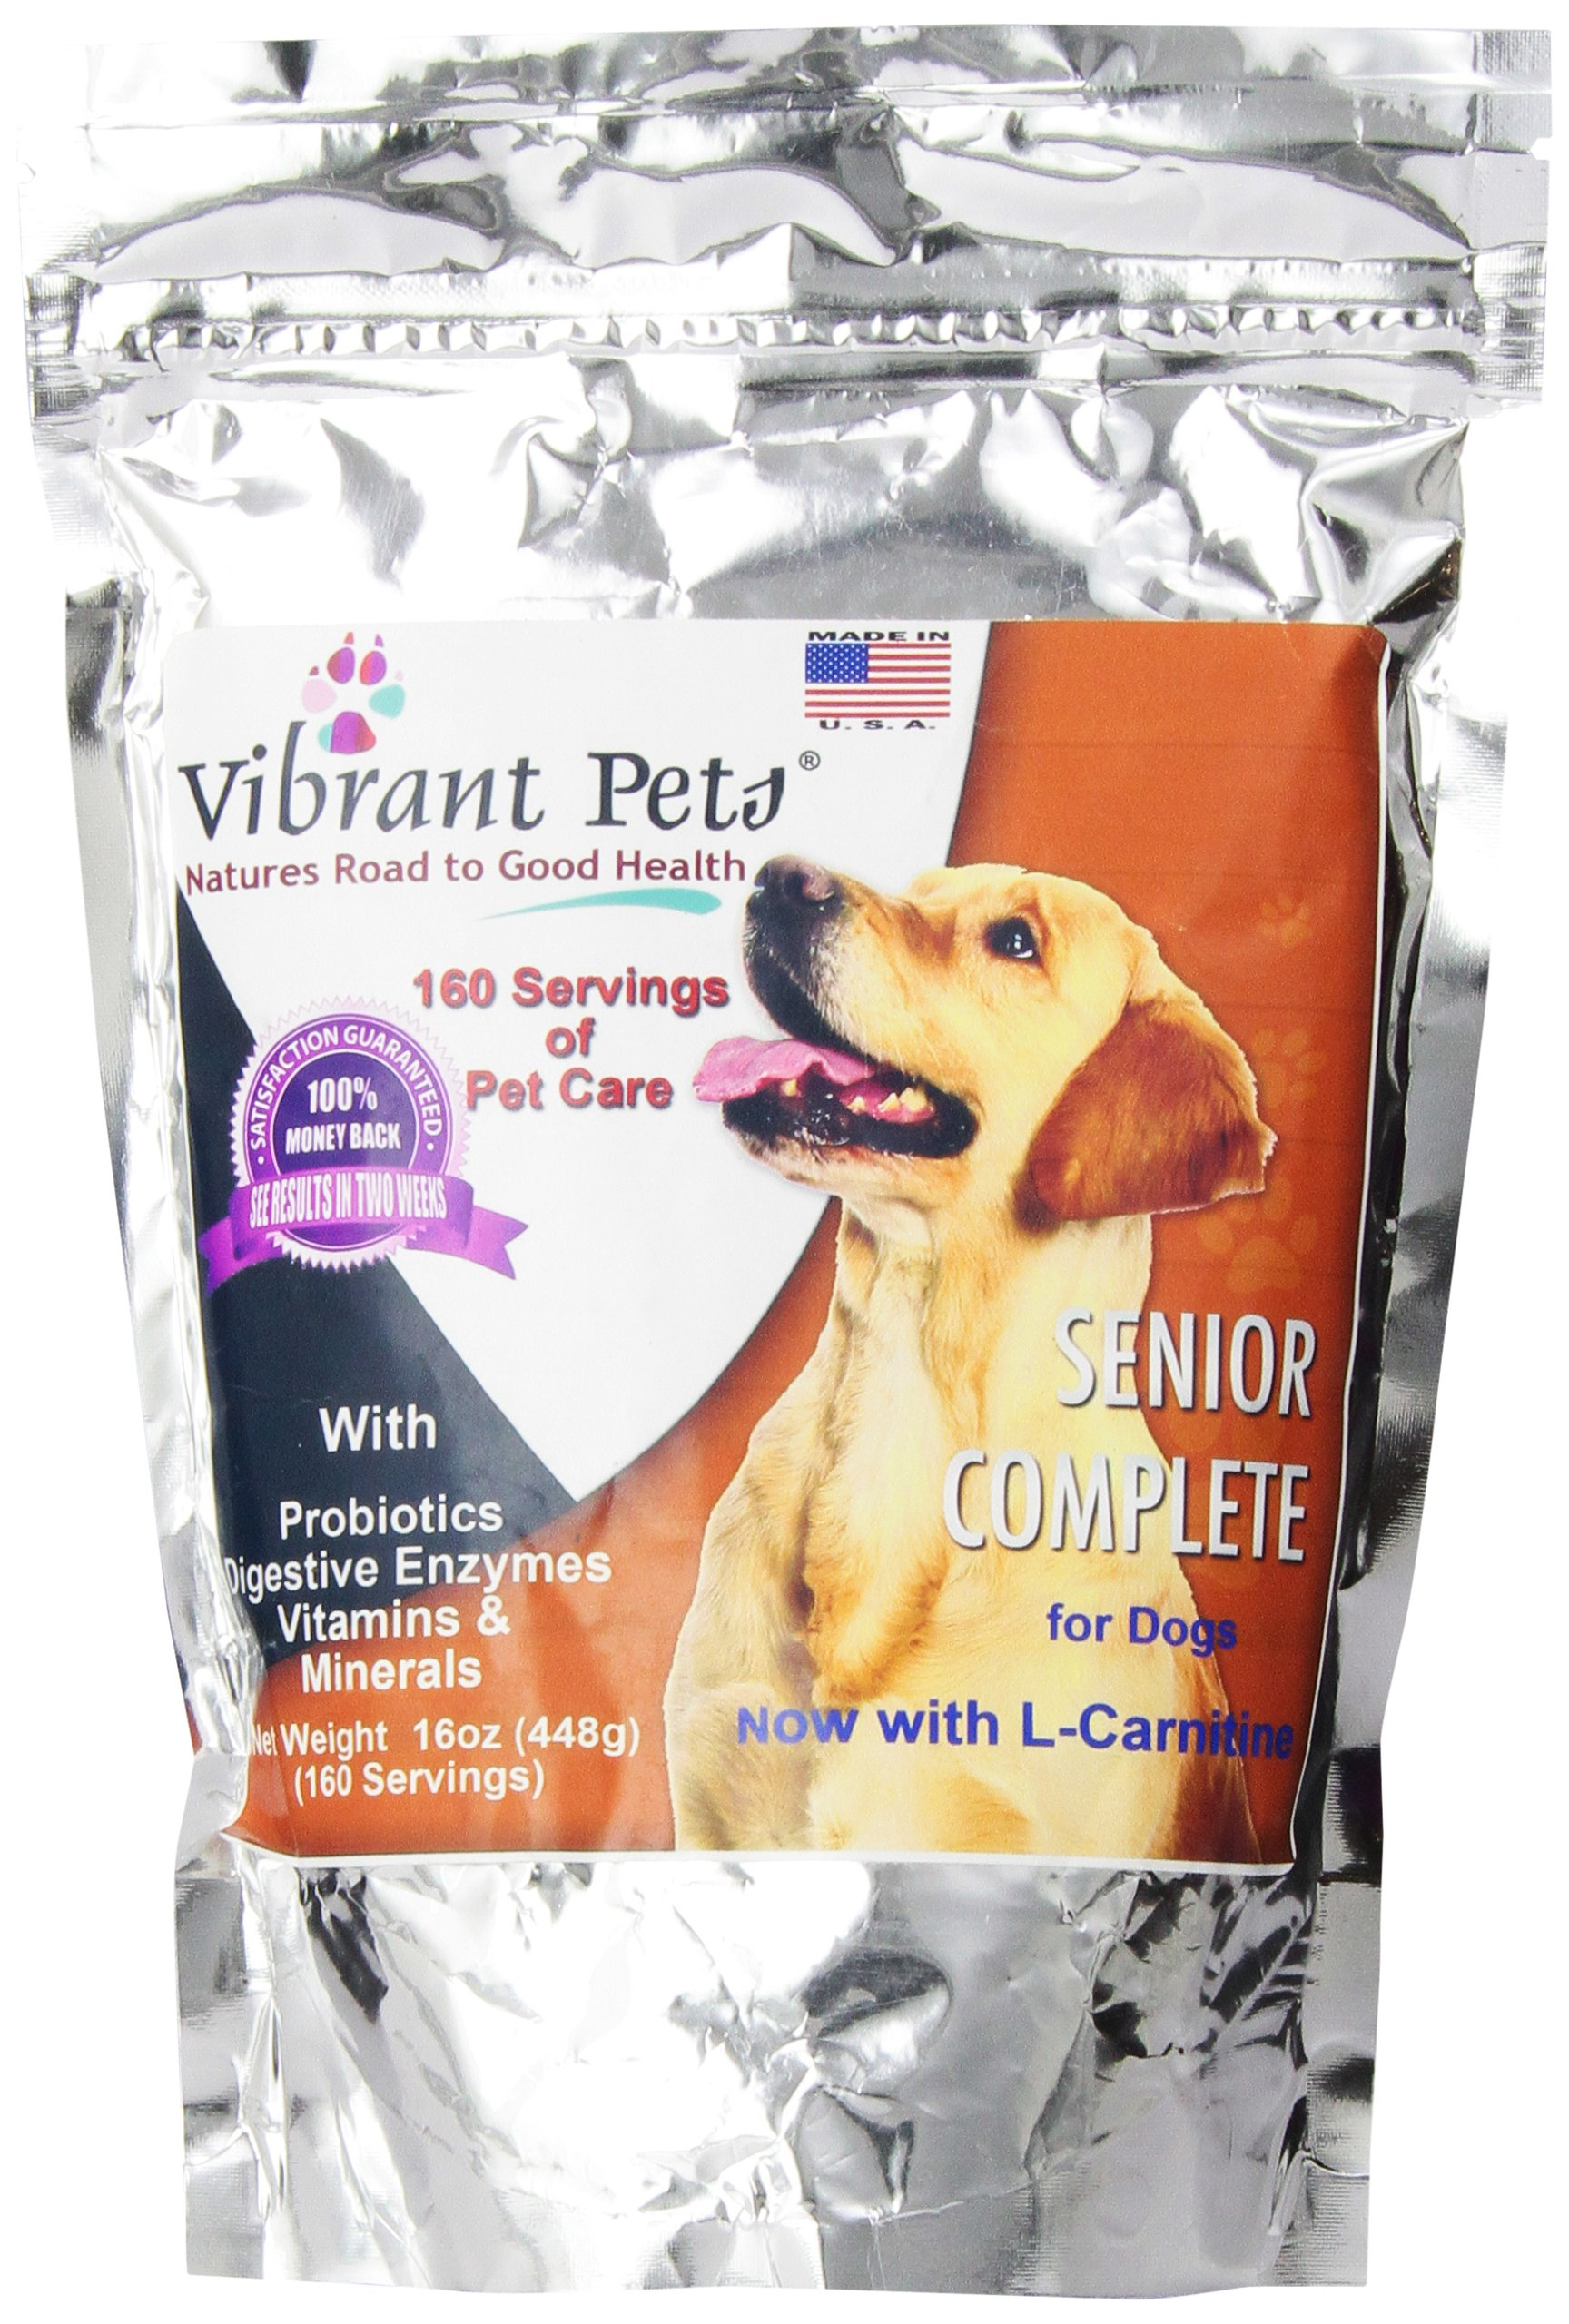 Vibrant Pets Senior Complete Dog Immune System Supplement   Older Dog Muscle and Joint Supplement with Probiotics & Enzymes for Digestion   Nutrient-Rich Skin & Coat Immune Booster Powder 16oz